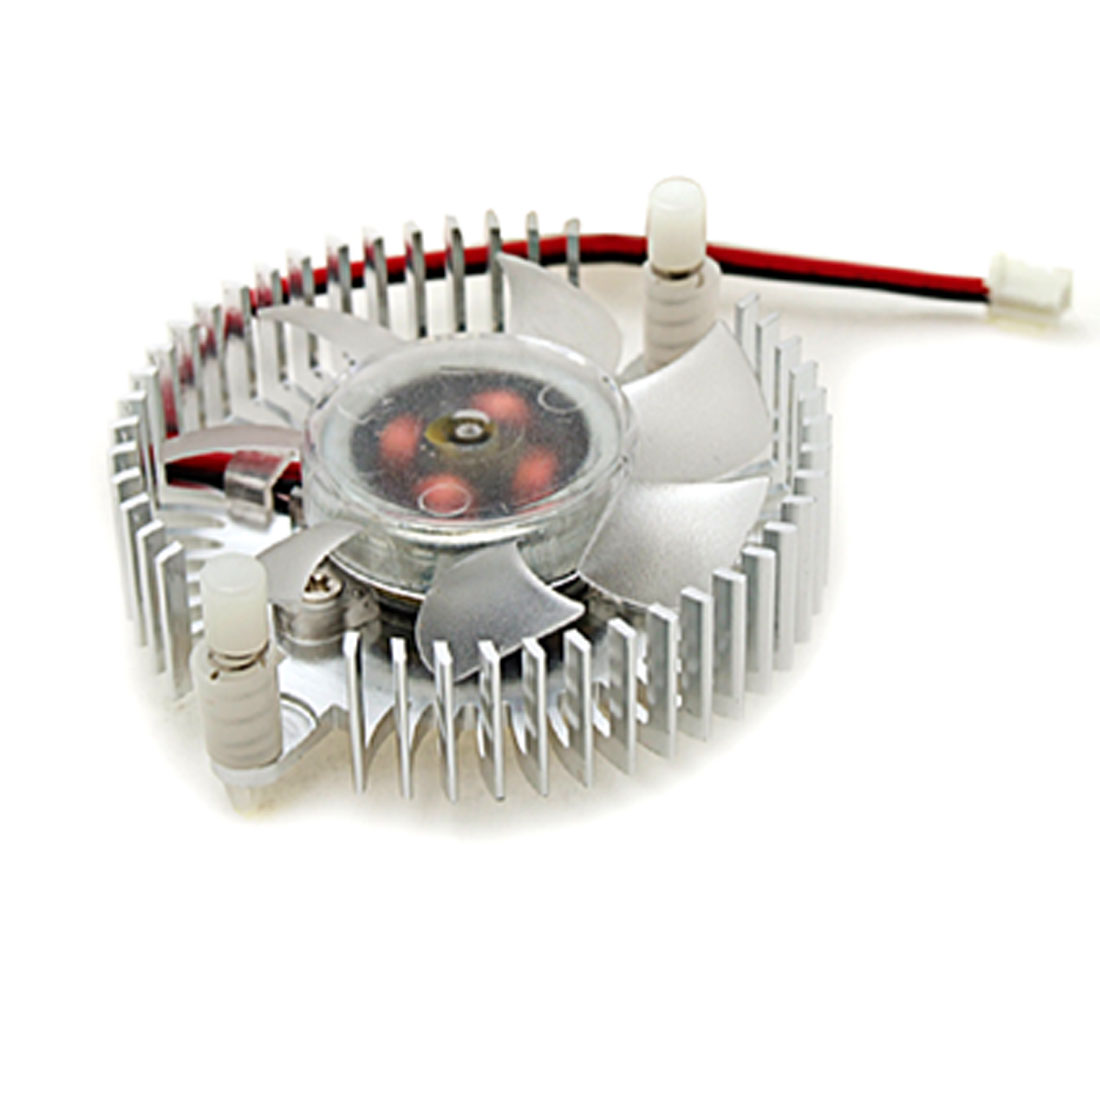 PC VGA Video Card Aluminium Heatsink Cooler Cooling Fan 4.5cm